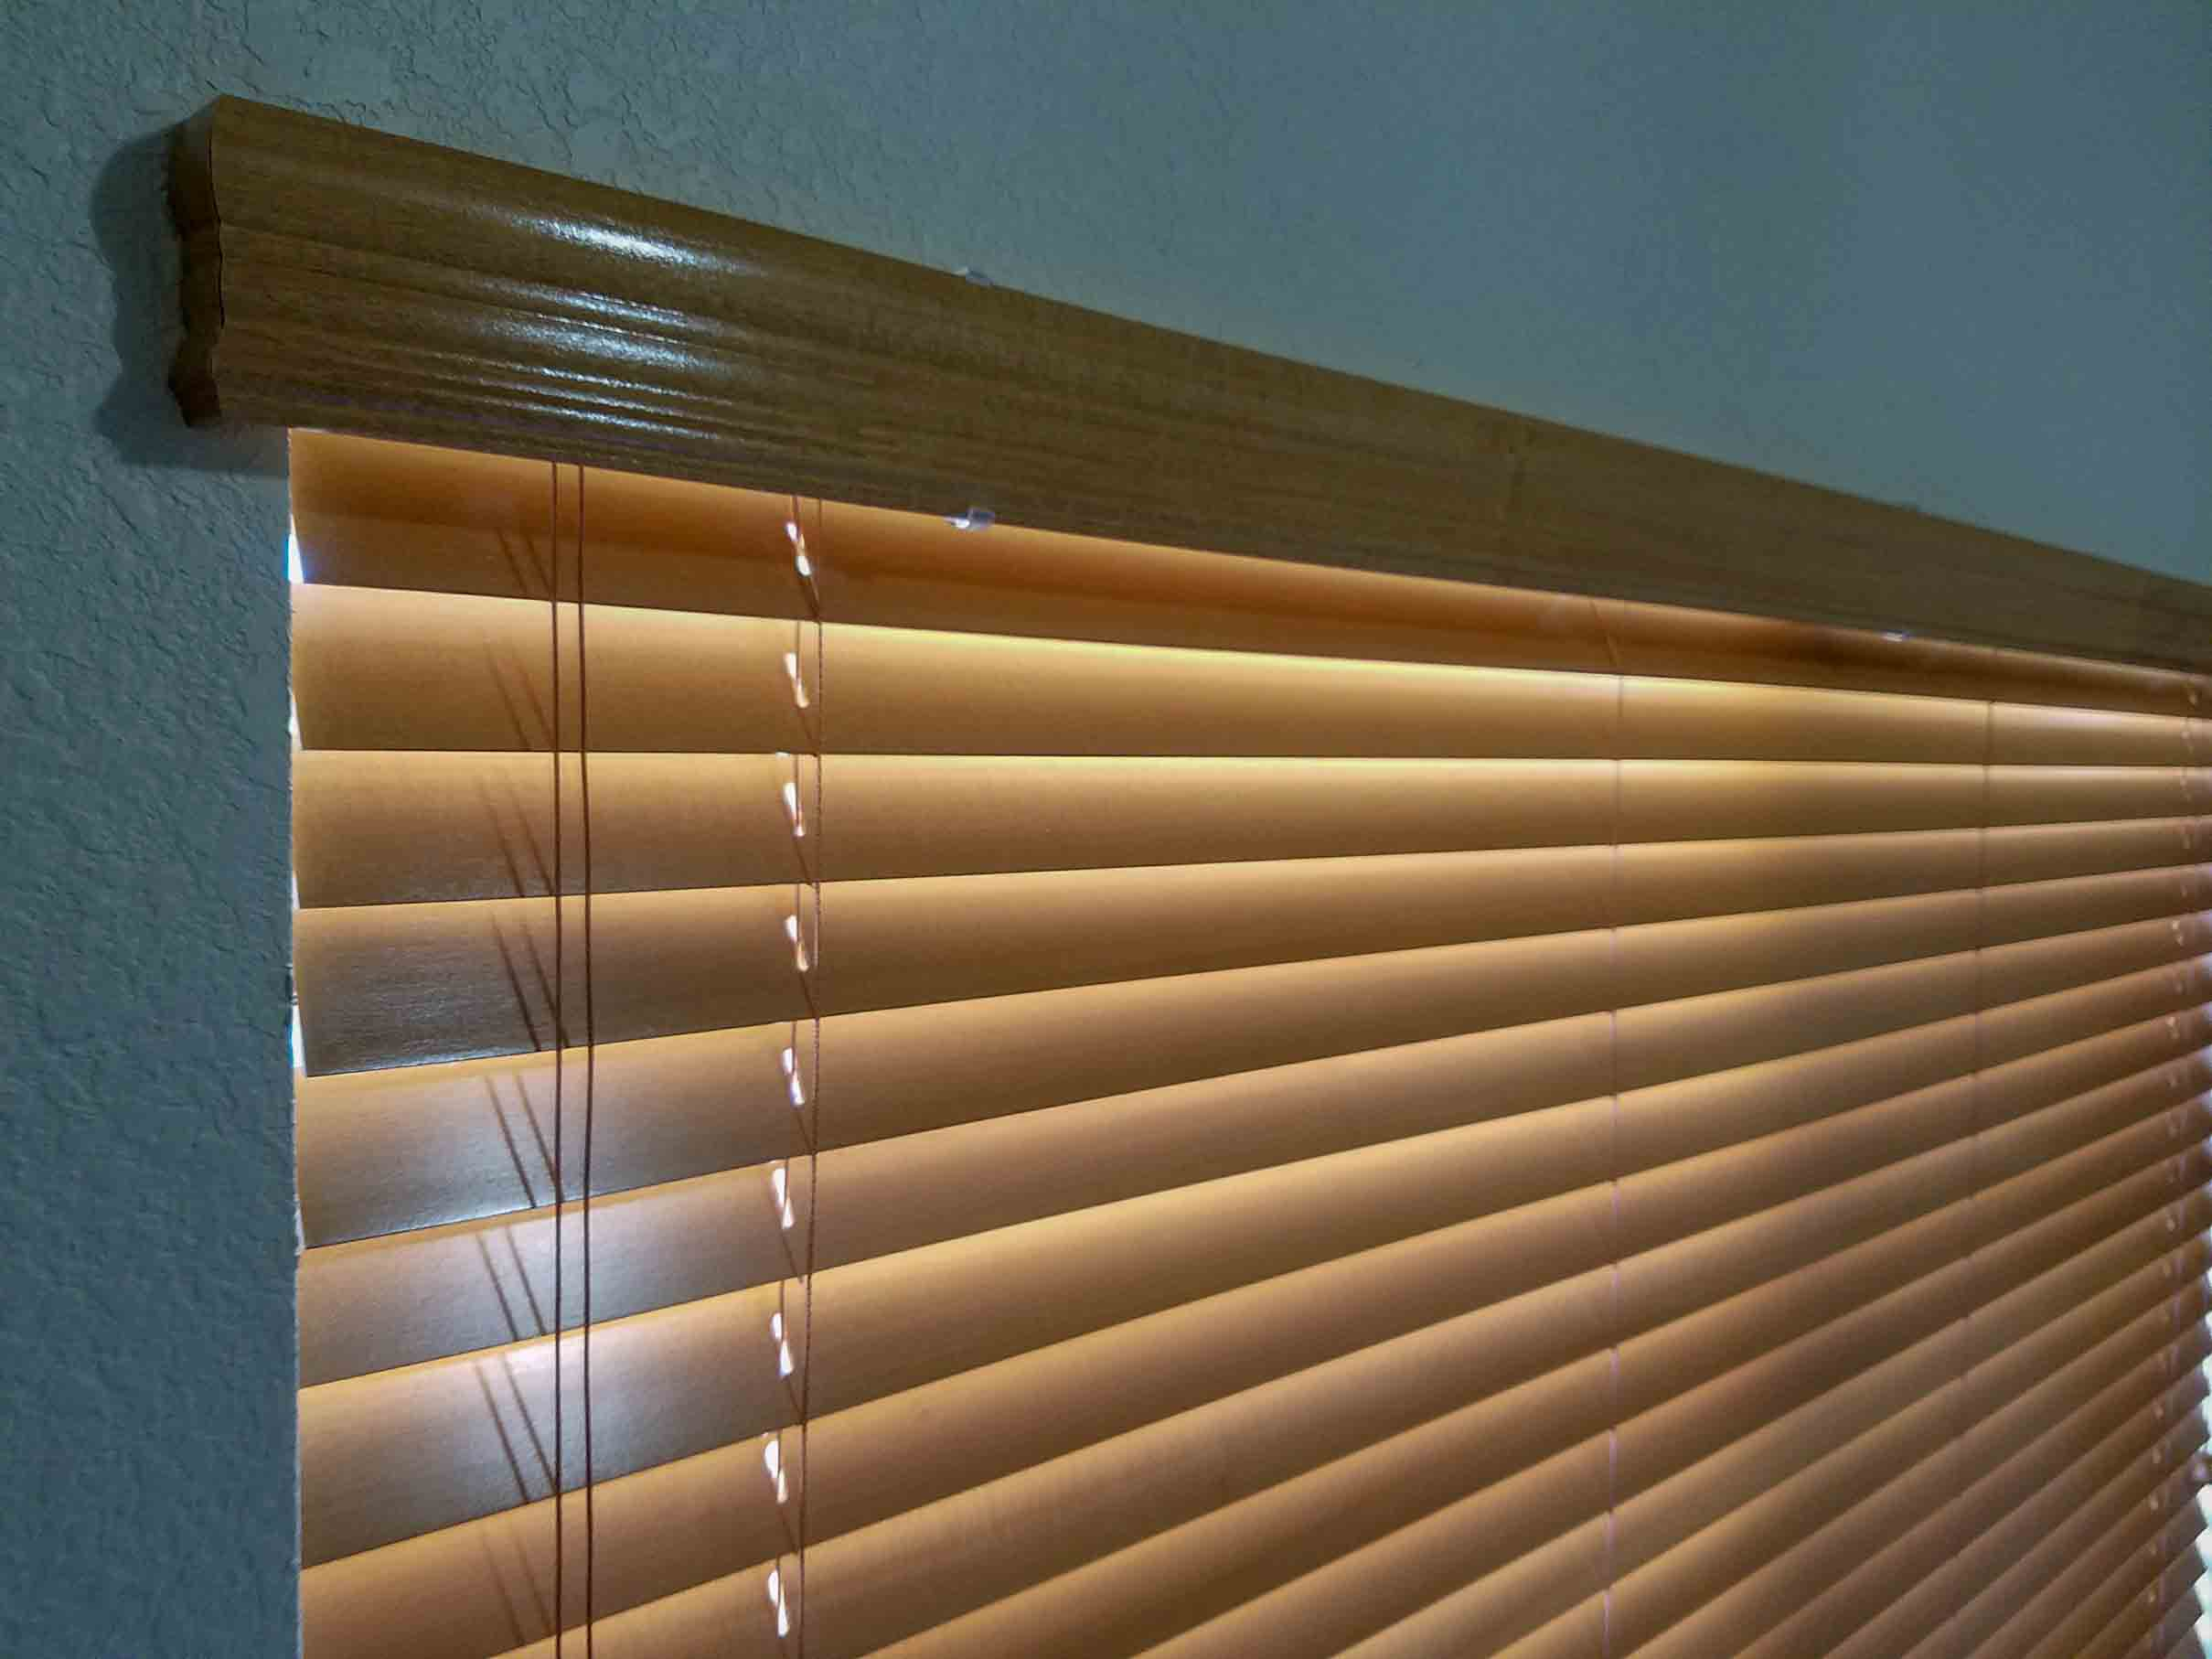 wood blinds gallery WOOD BLINDS GALLERY 20160820 130505